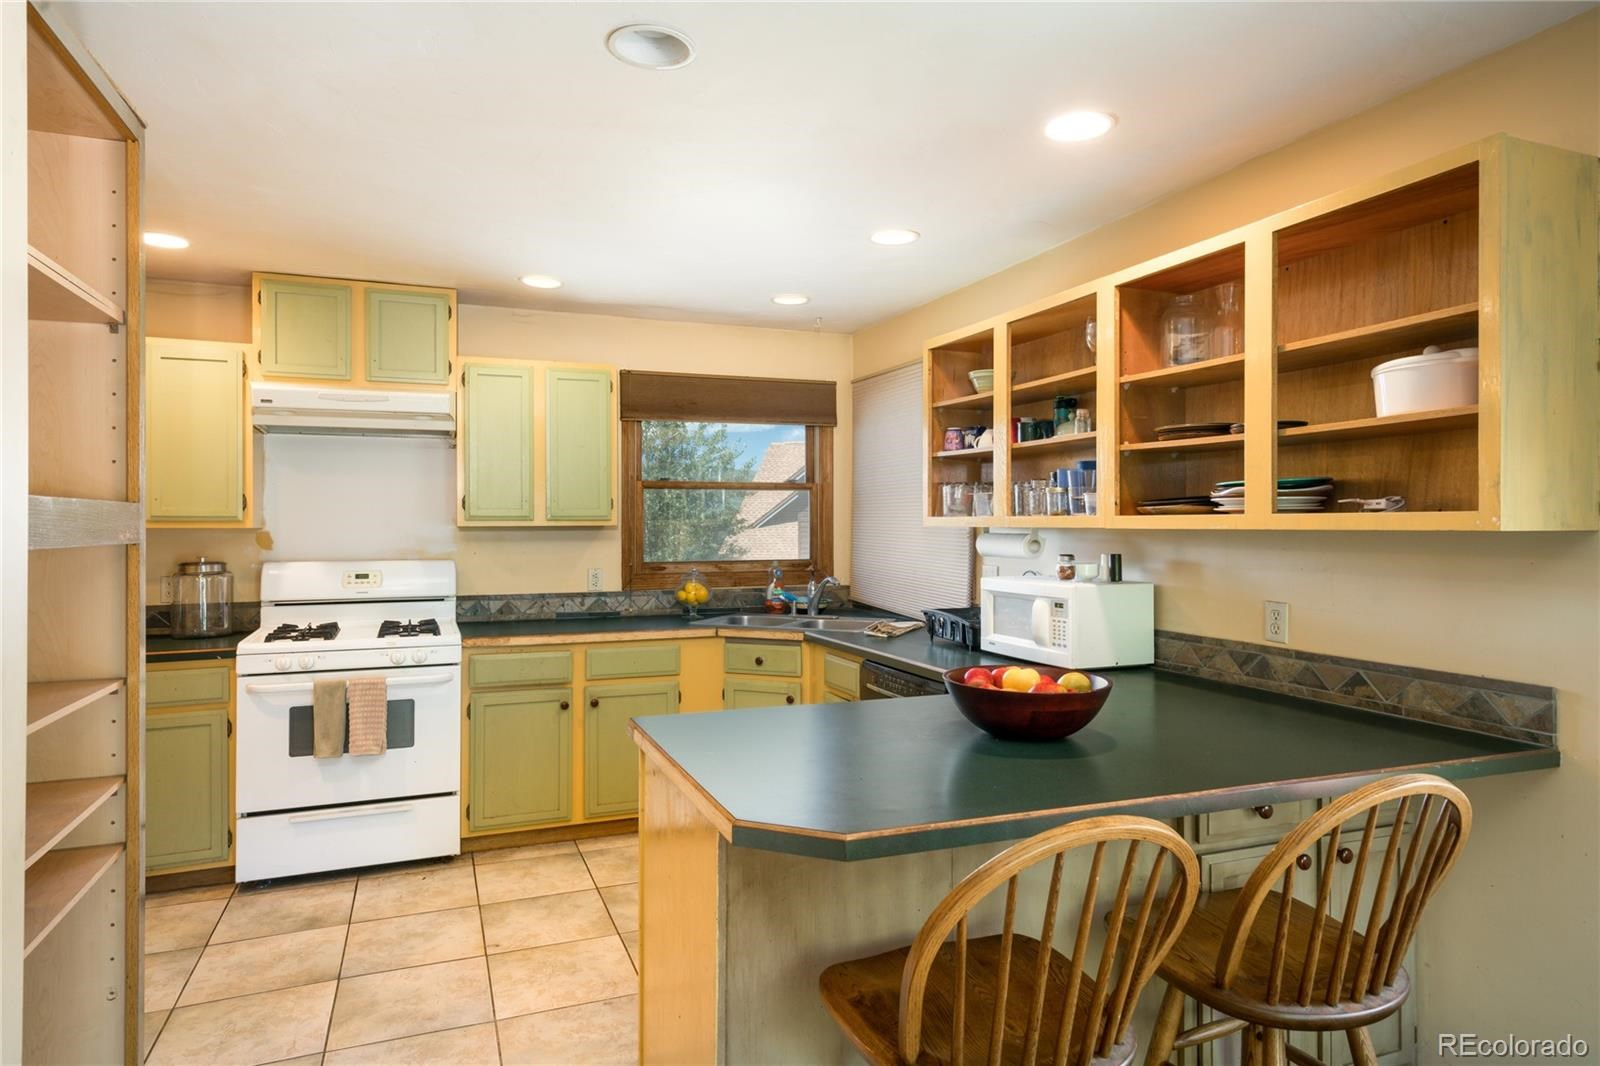 MLS# 3817598 - 2 - 404 Lupine Drive, Steamboat Springs, CO 80487